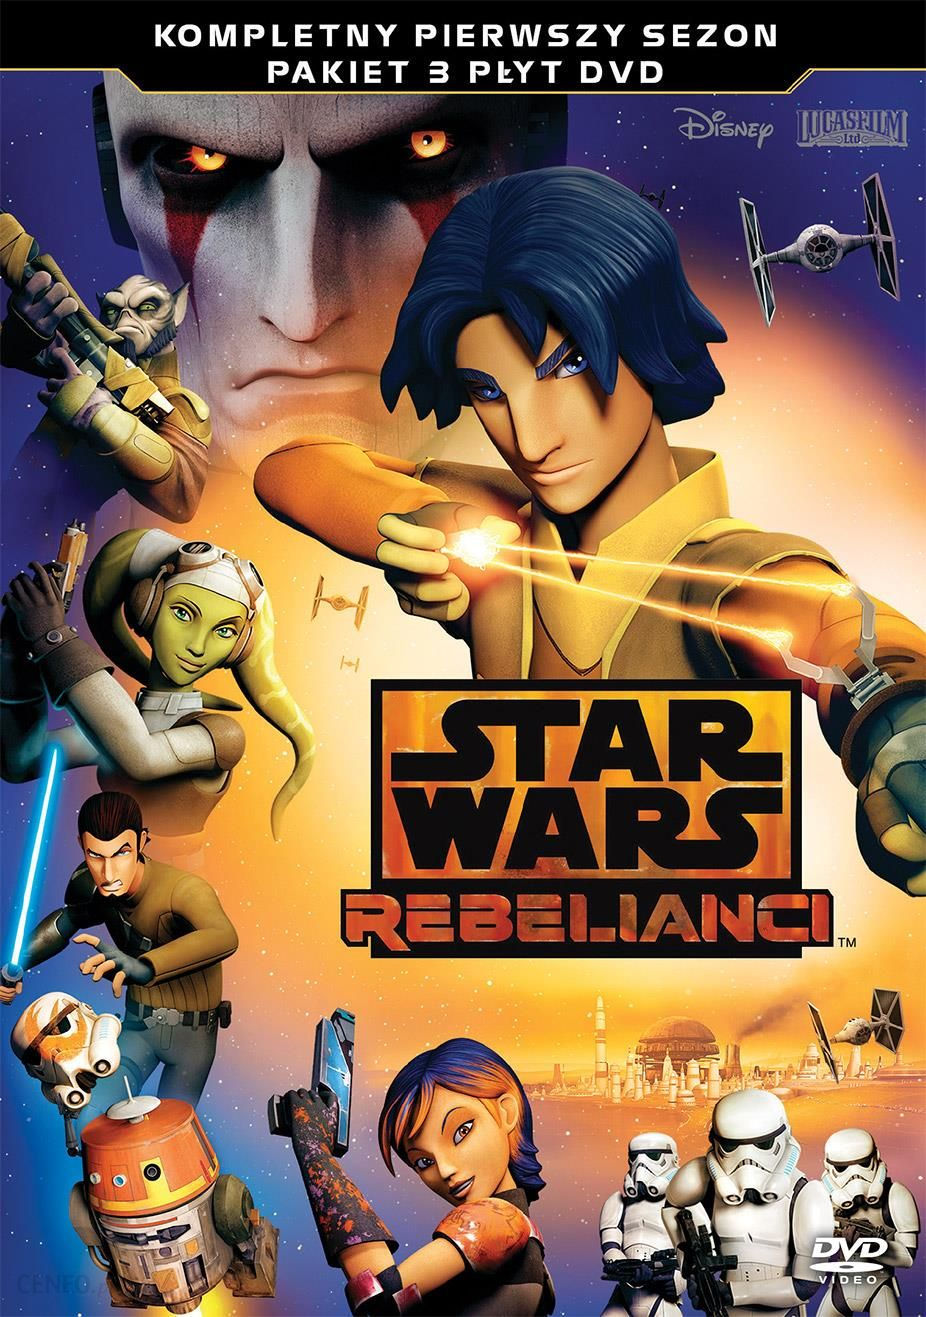 Star Wars Rebelianci Sezon 1 Dvd